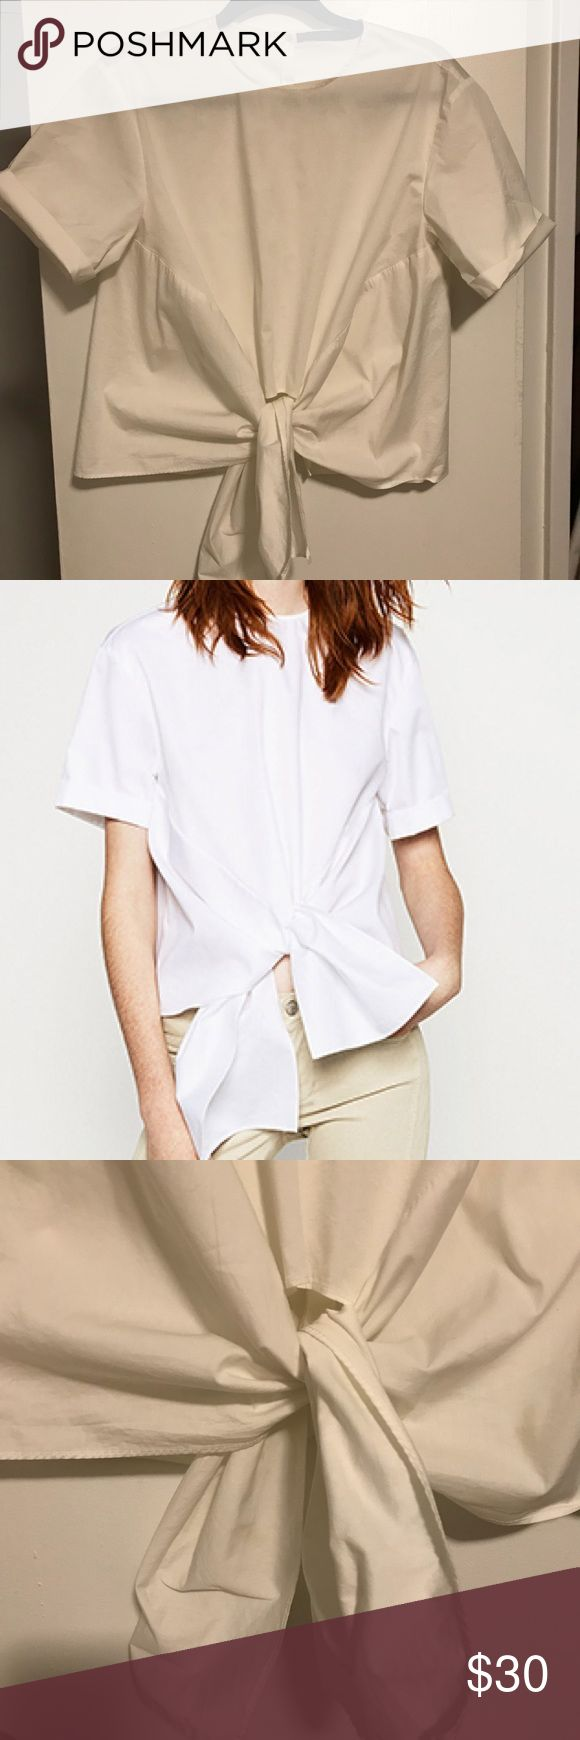 ZARA knot front button down back blouse Cotton & nylon white blouse with knot bottom front, button up back, and rolled up cuffs on arms. Worn once Zara Tops Blouses